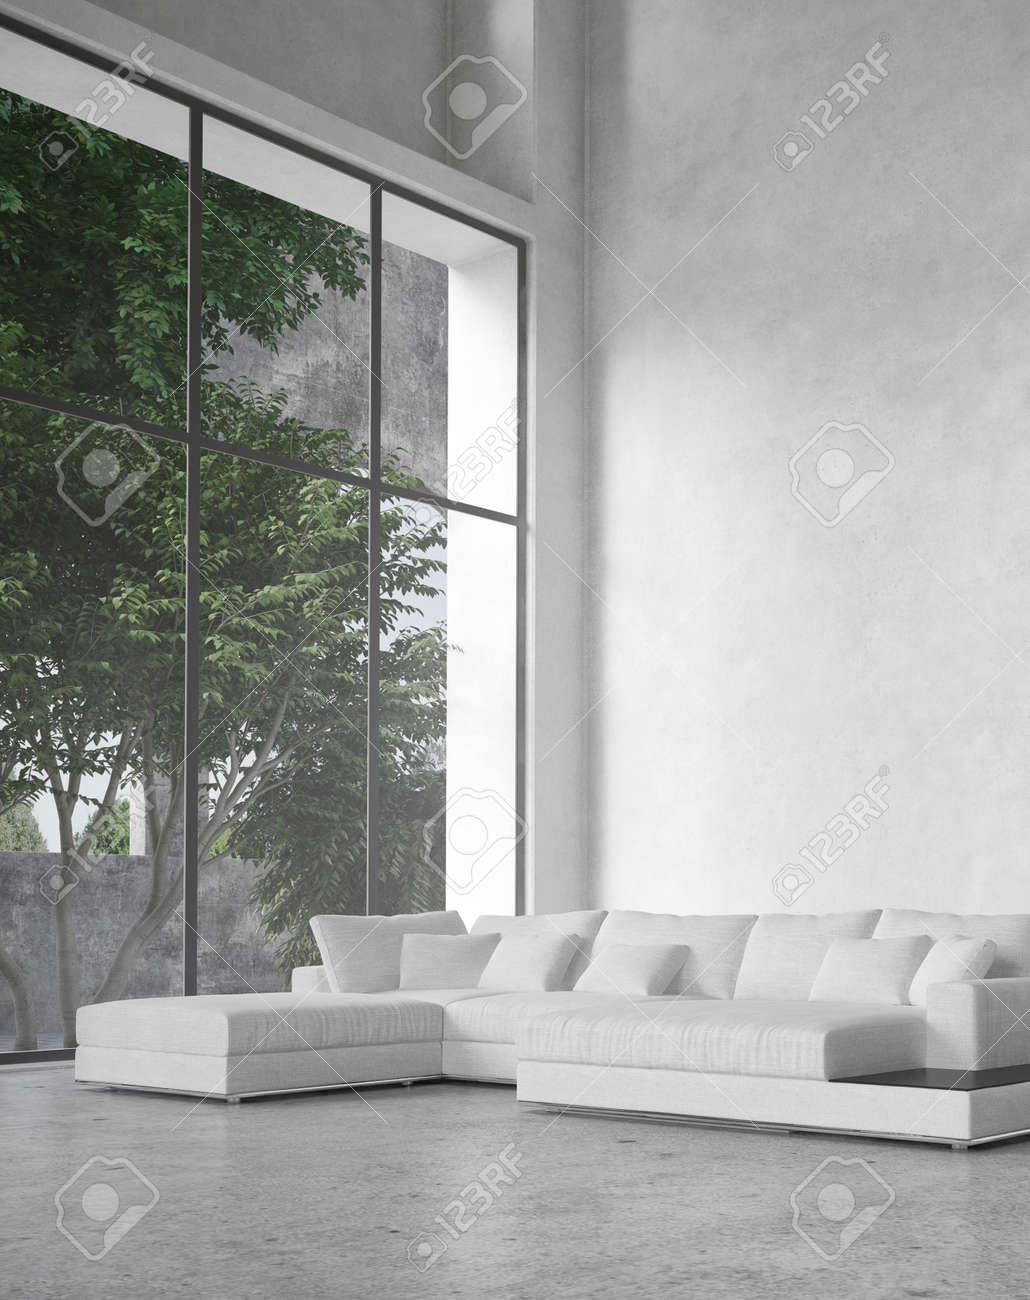 Minimalist Background Large Modern Living Room Interior With A Double Volume Ceiling And